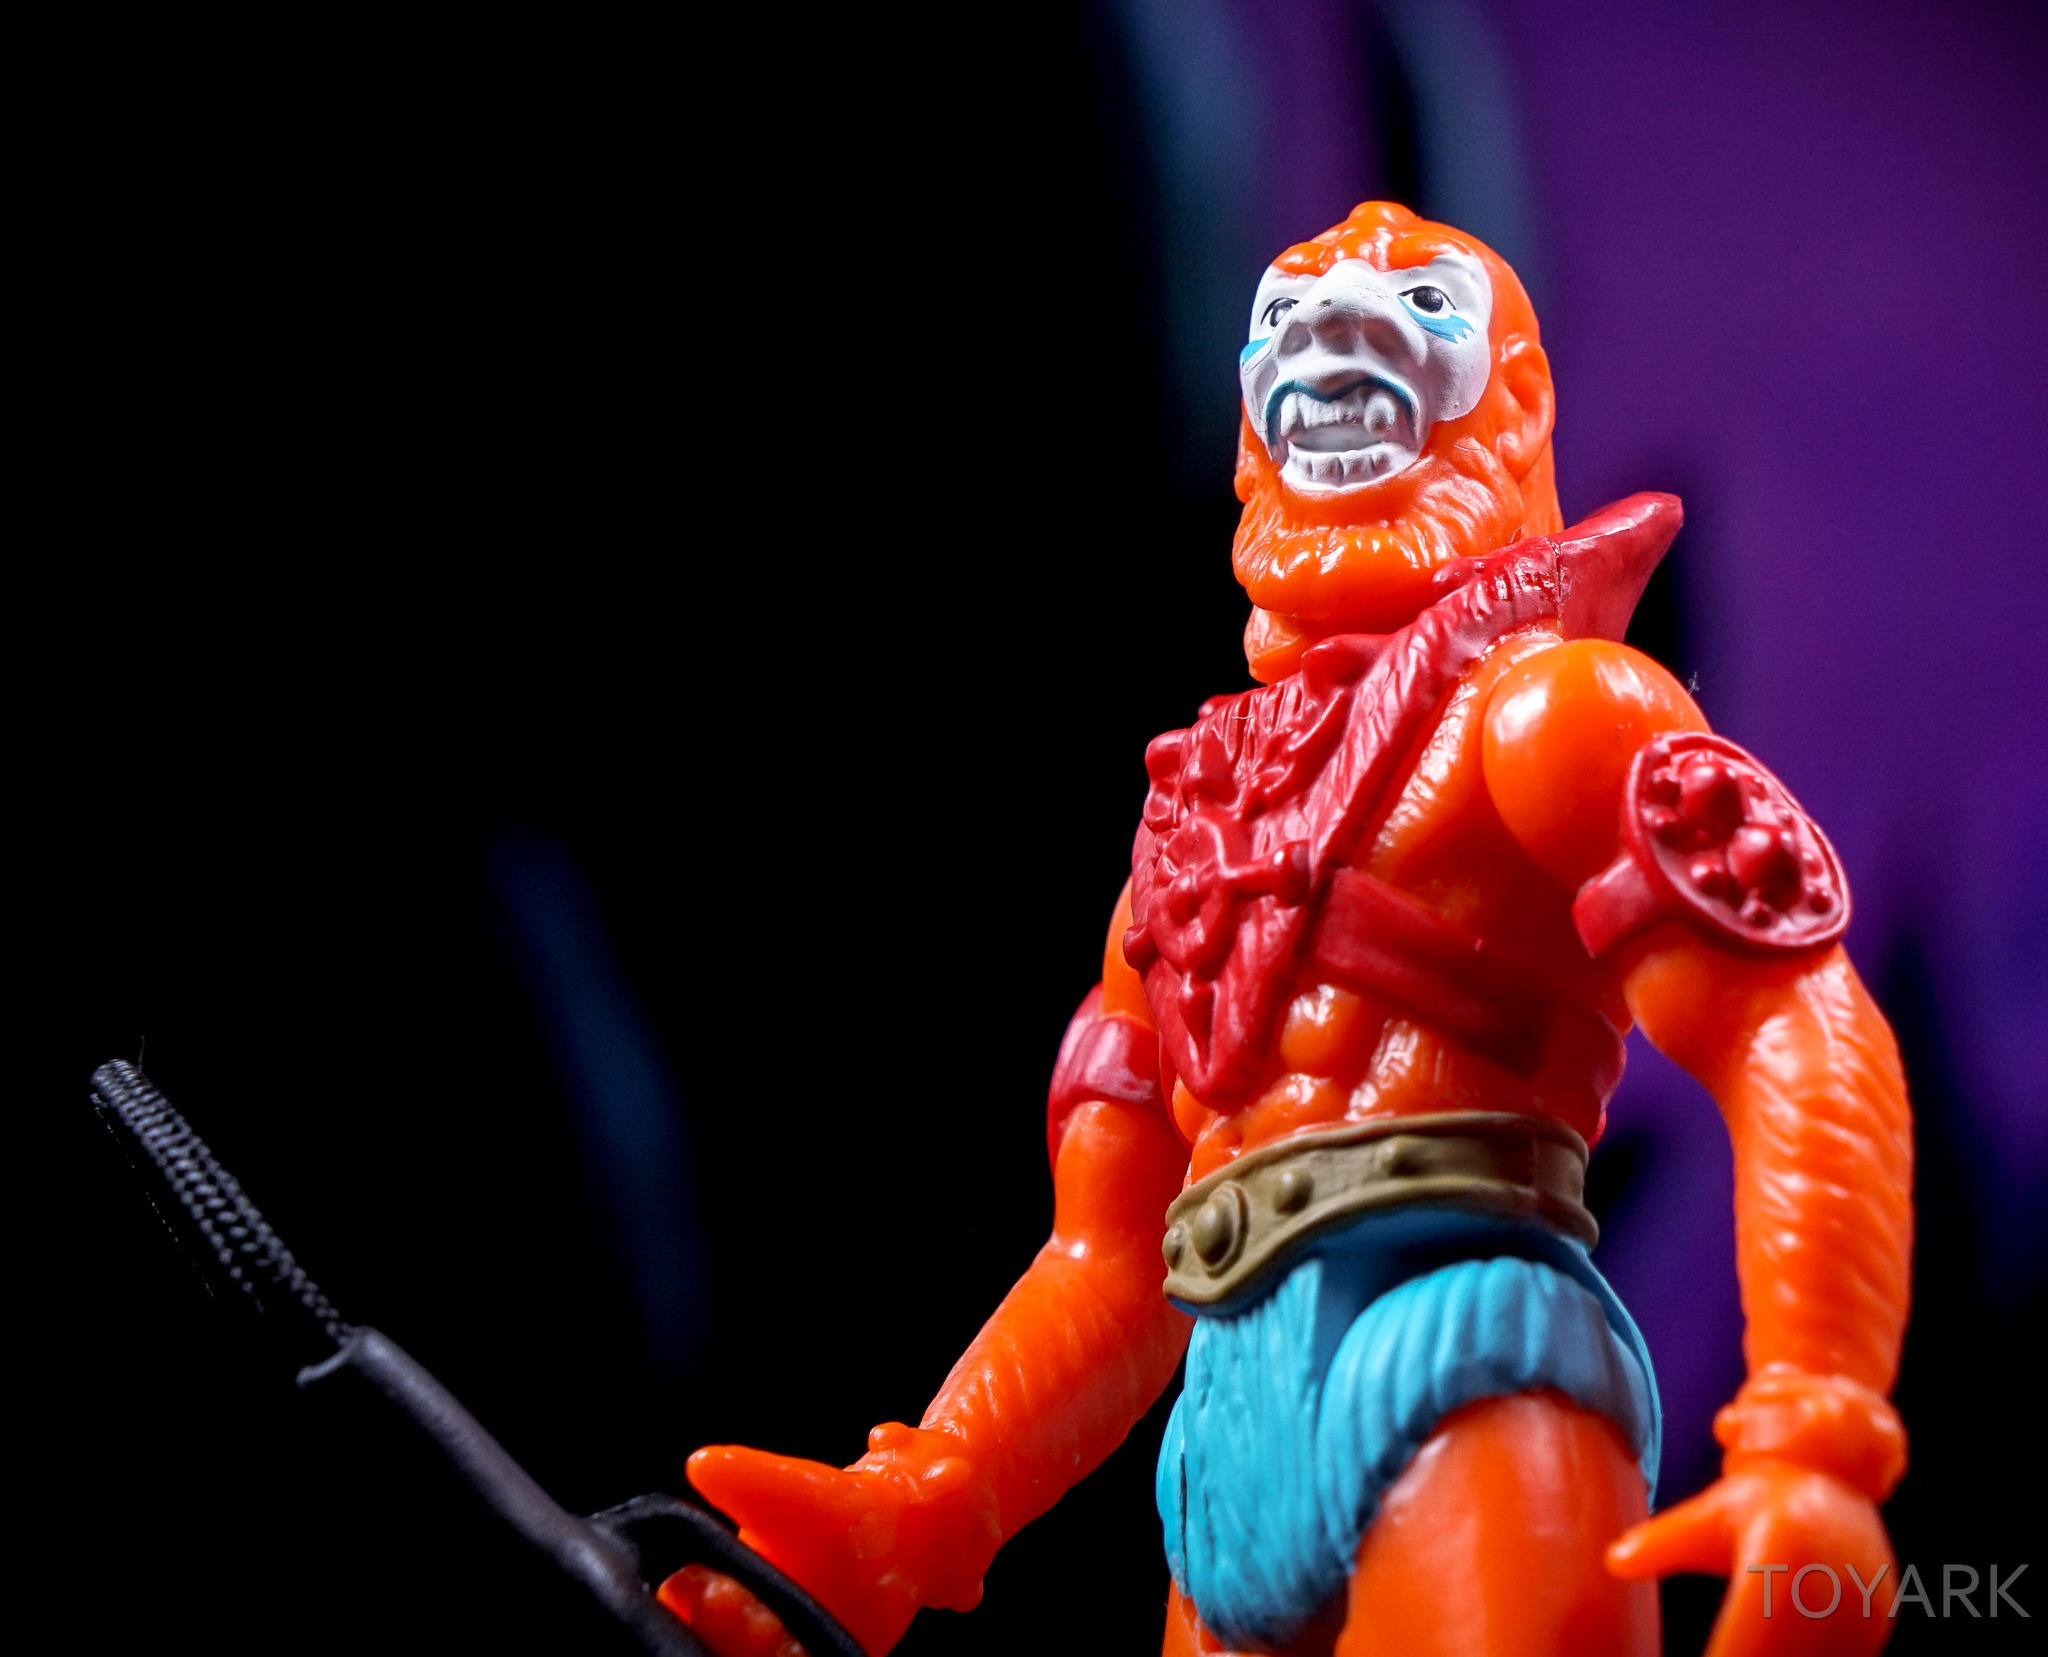 http://news.toyark.com/wp-content/uploads/sites/4/2016/07/MOTU-Super-7-Beast-Man-013.jpg